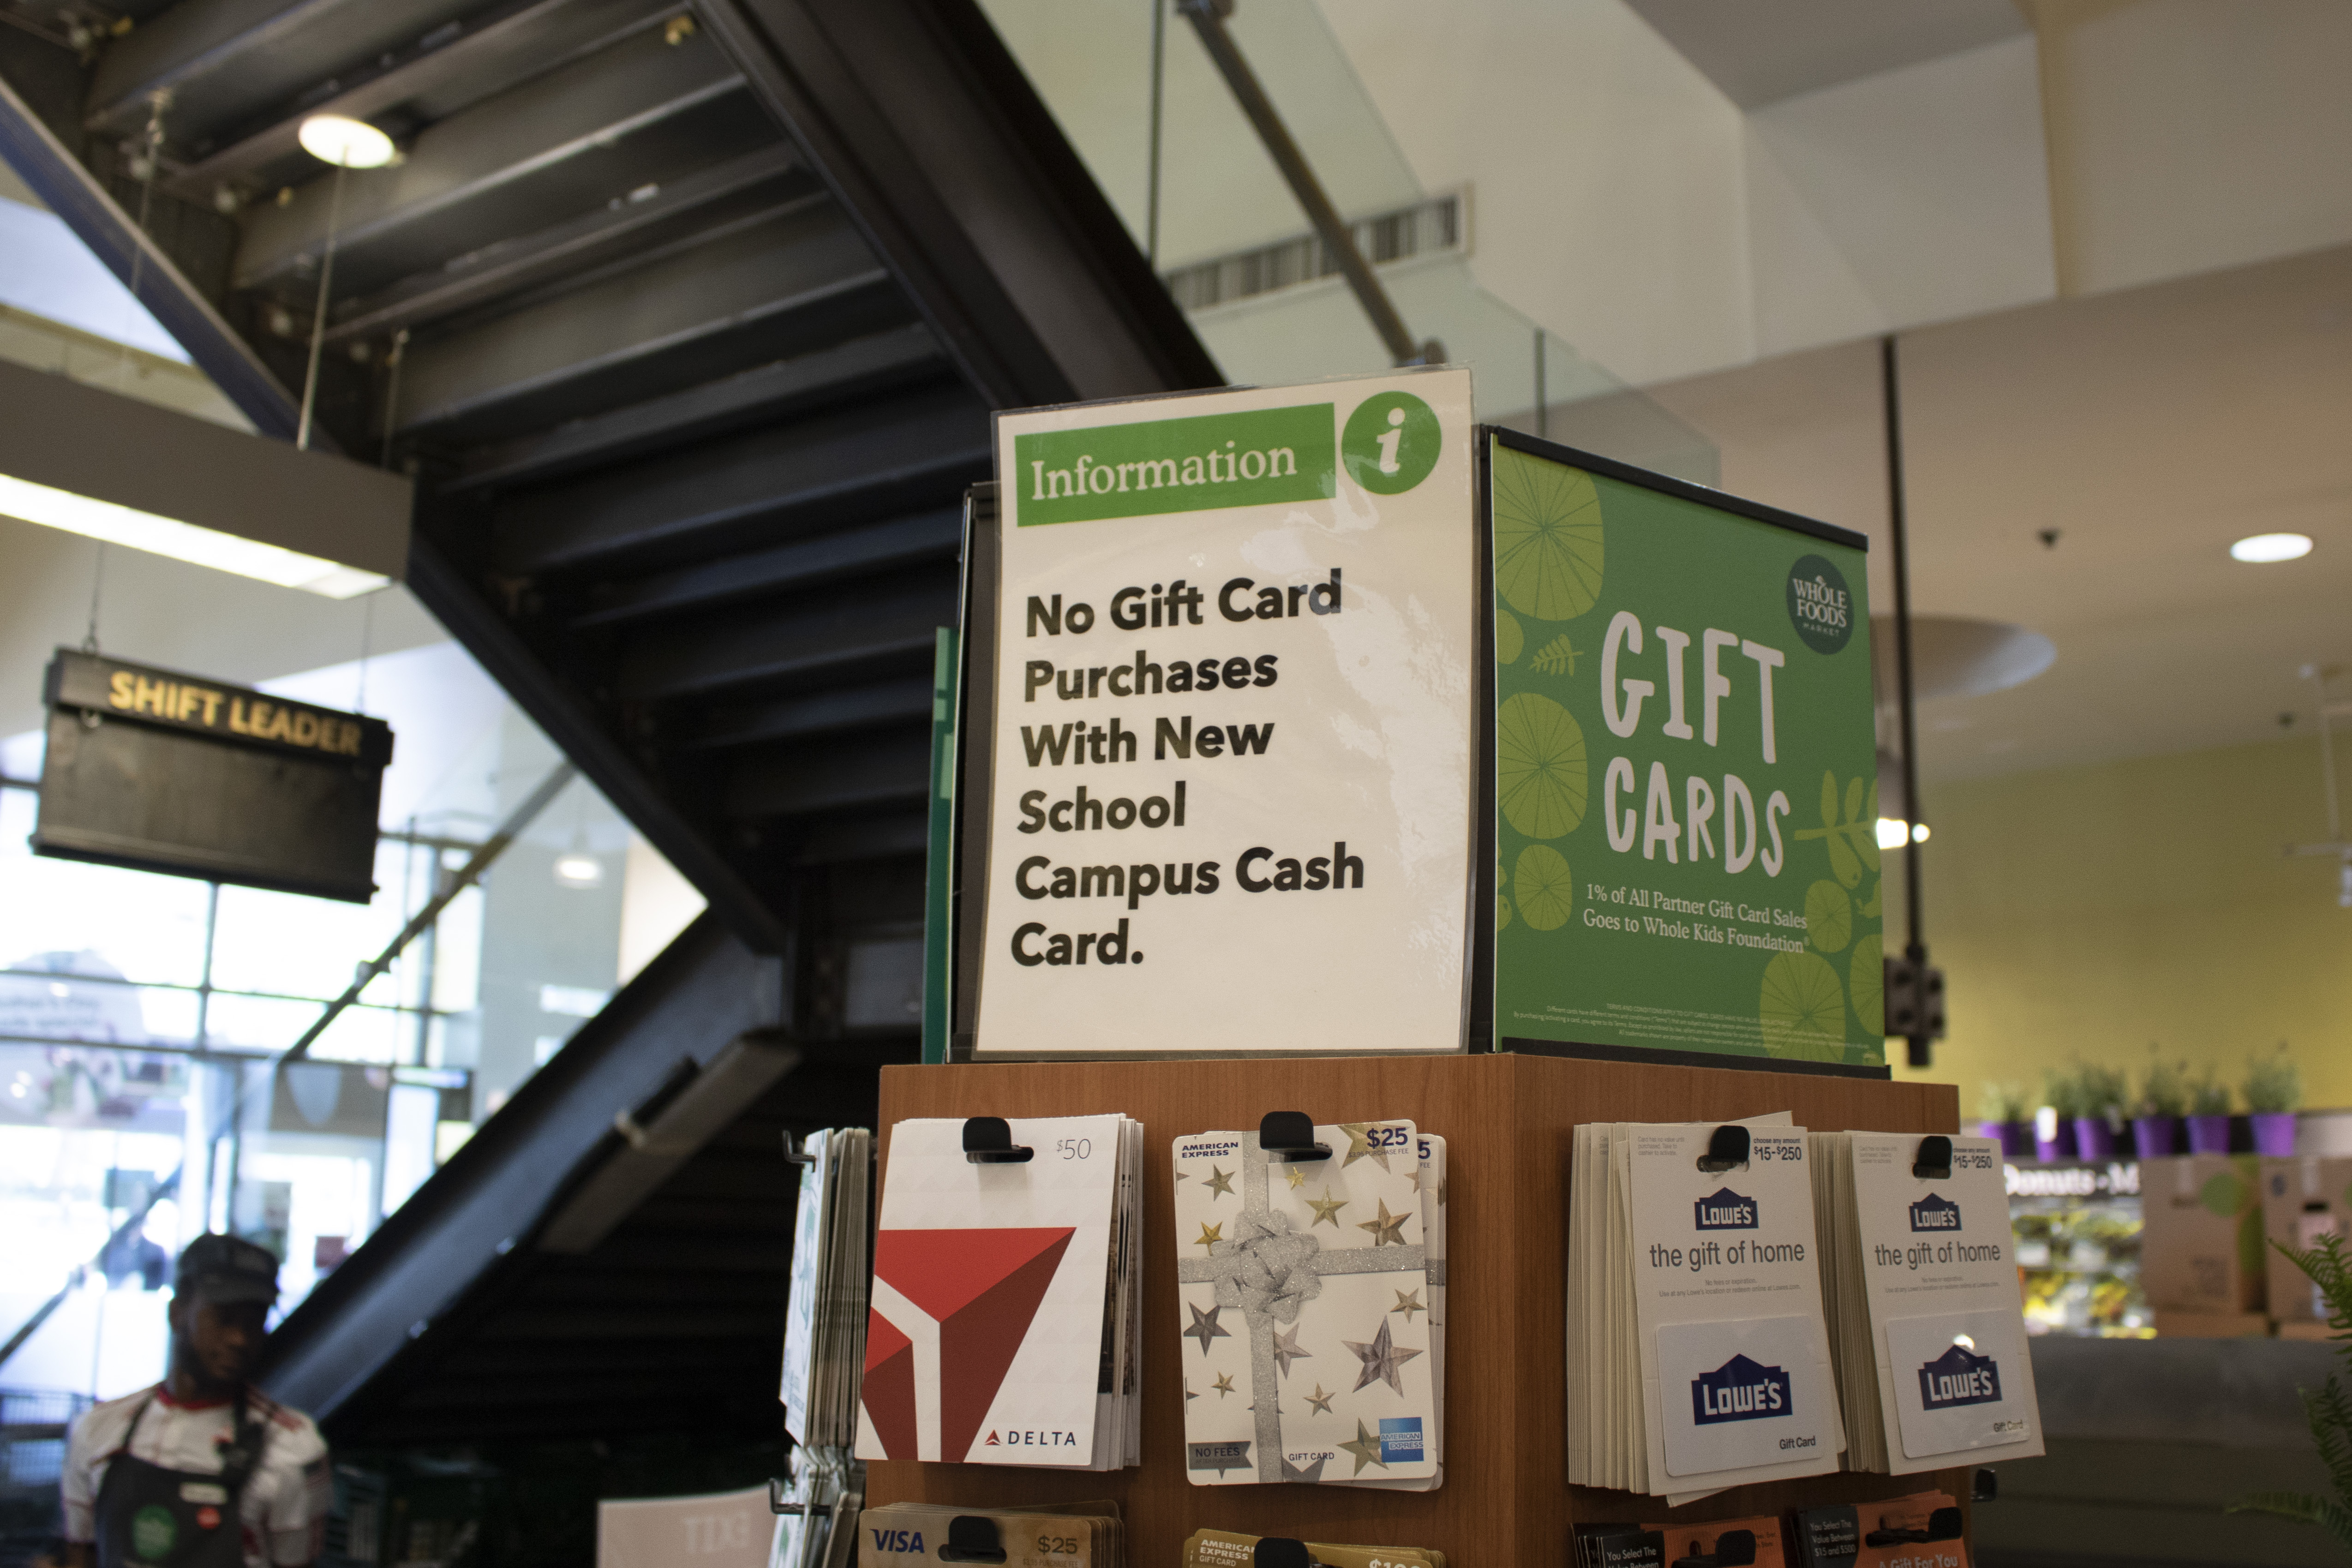 Students binged on gift cards for retailers like Uber and Nike, and Visa gift cards at Whole Foods last week, after Dining Dollars, the school's meal plan, ...